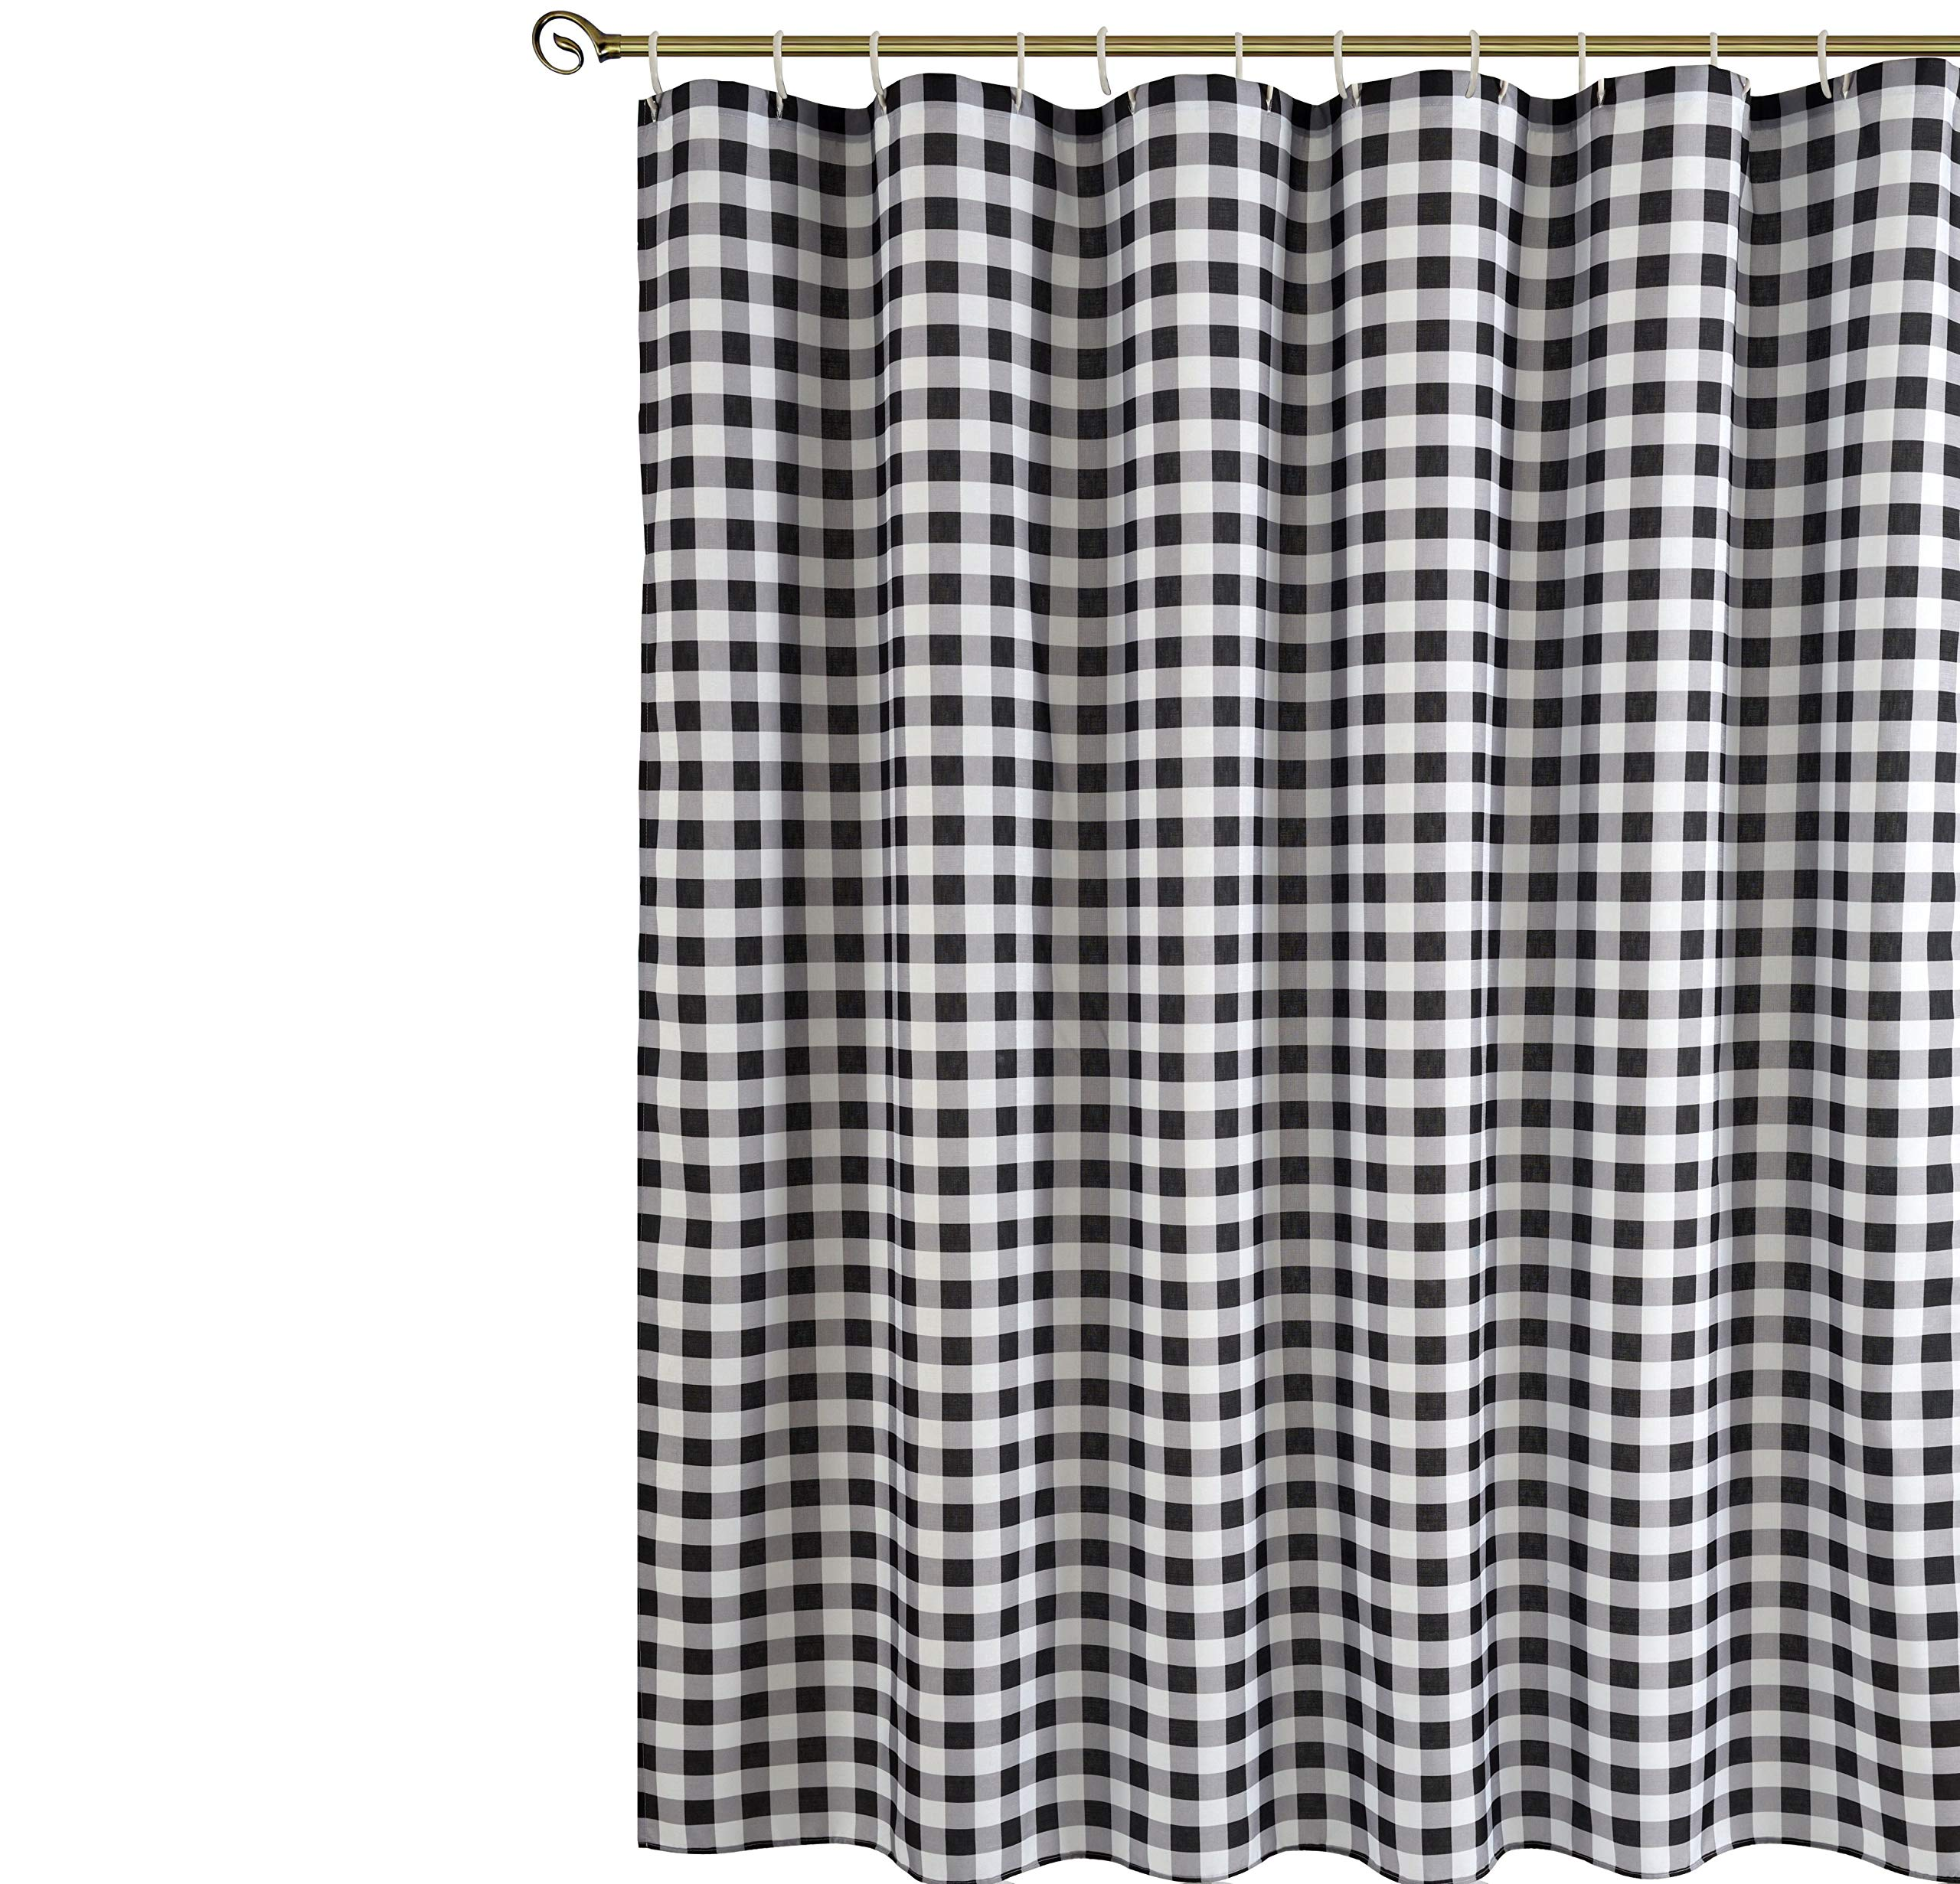 Biscaynebay Textured Fabric Shower Curtains, Plaid Printed Bathroom Curtains, Black and Grey 72 by 72 Inches by Biscaynebay